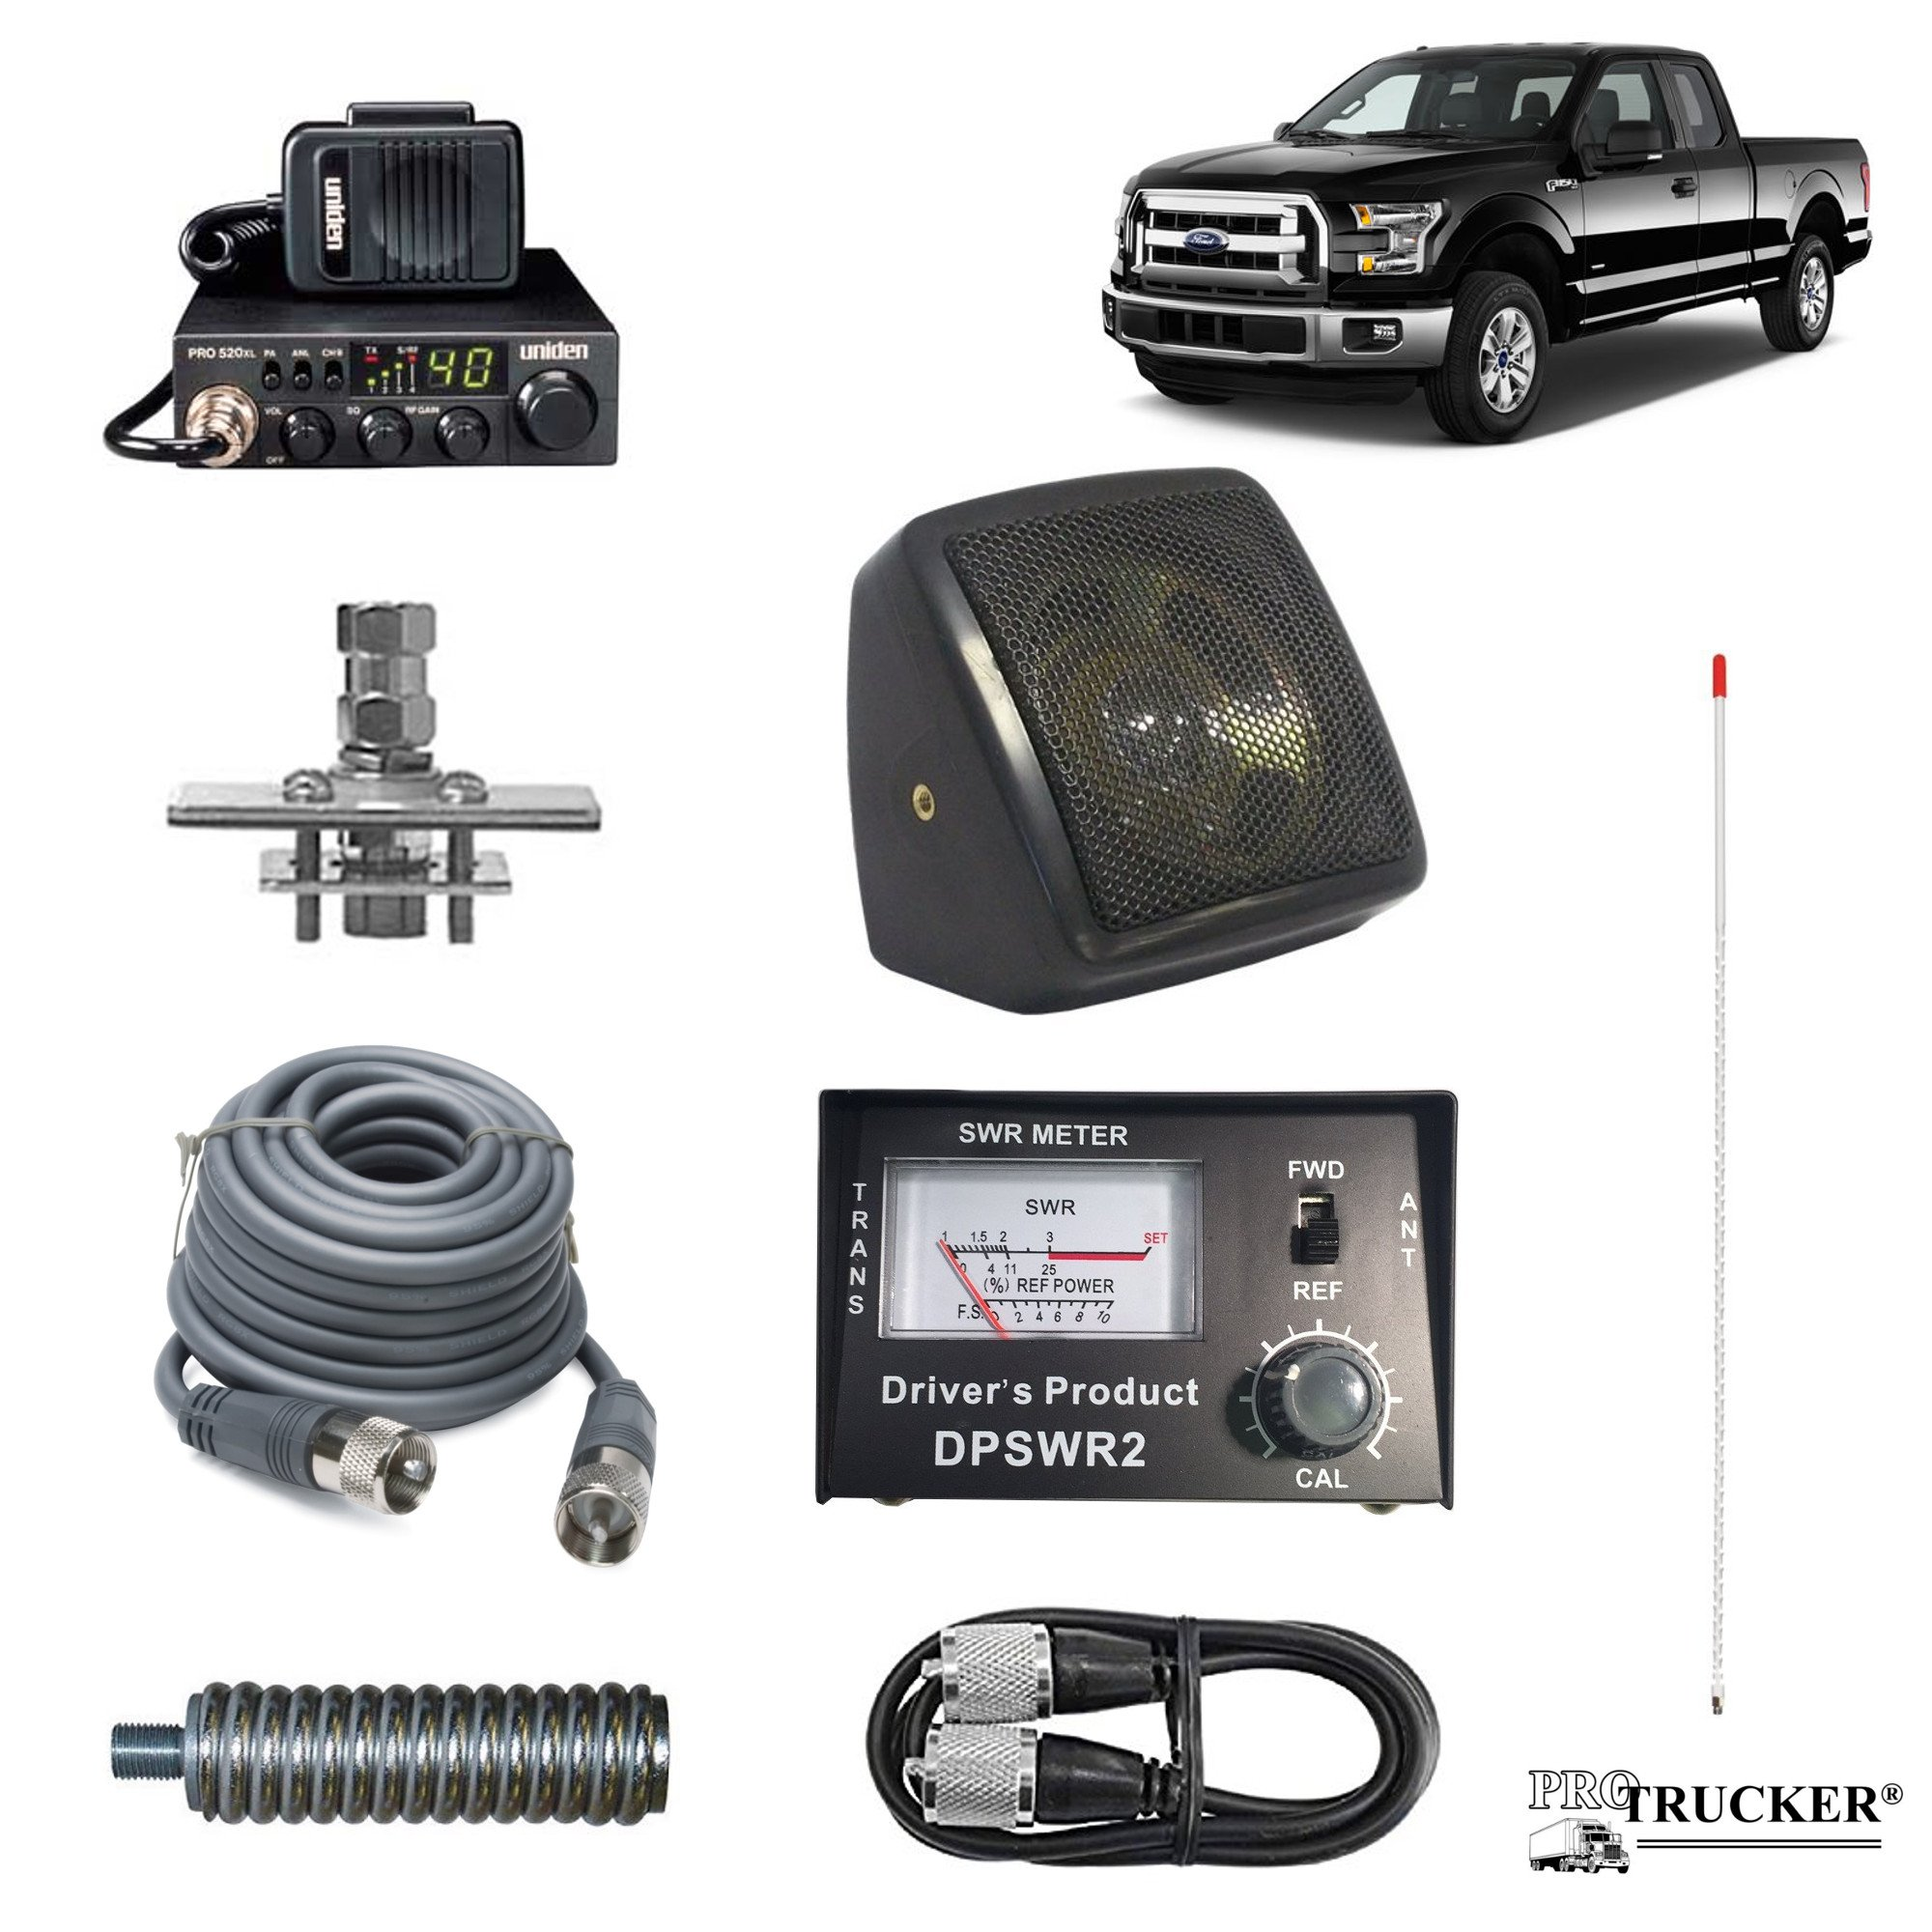 Pro Trucker Pickup CB Radio Kit Includes Radio, 4' Antenna, CB Antenna Mount, CB Coax, SWR Meter w/ Jumper Coax, Speaker, and Spring by Pro Trucker (Image #1)